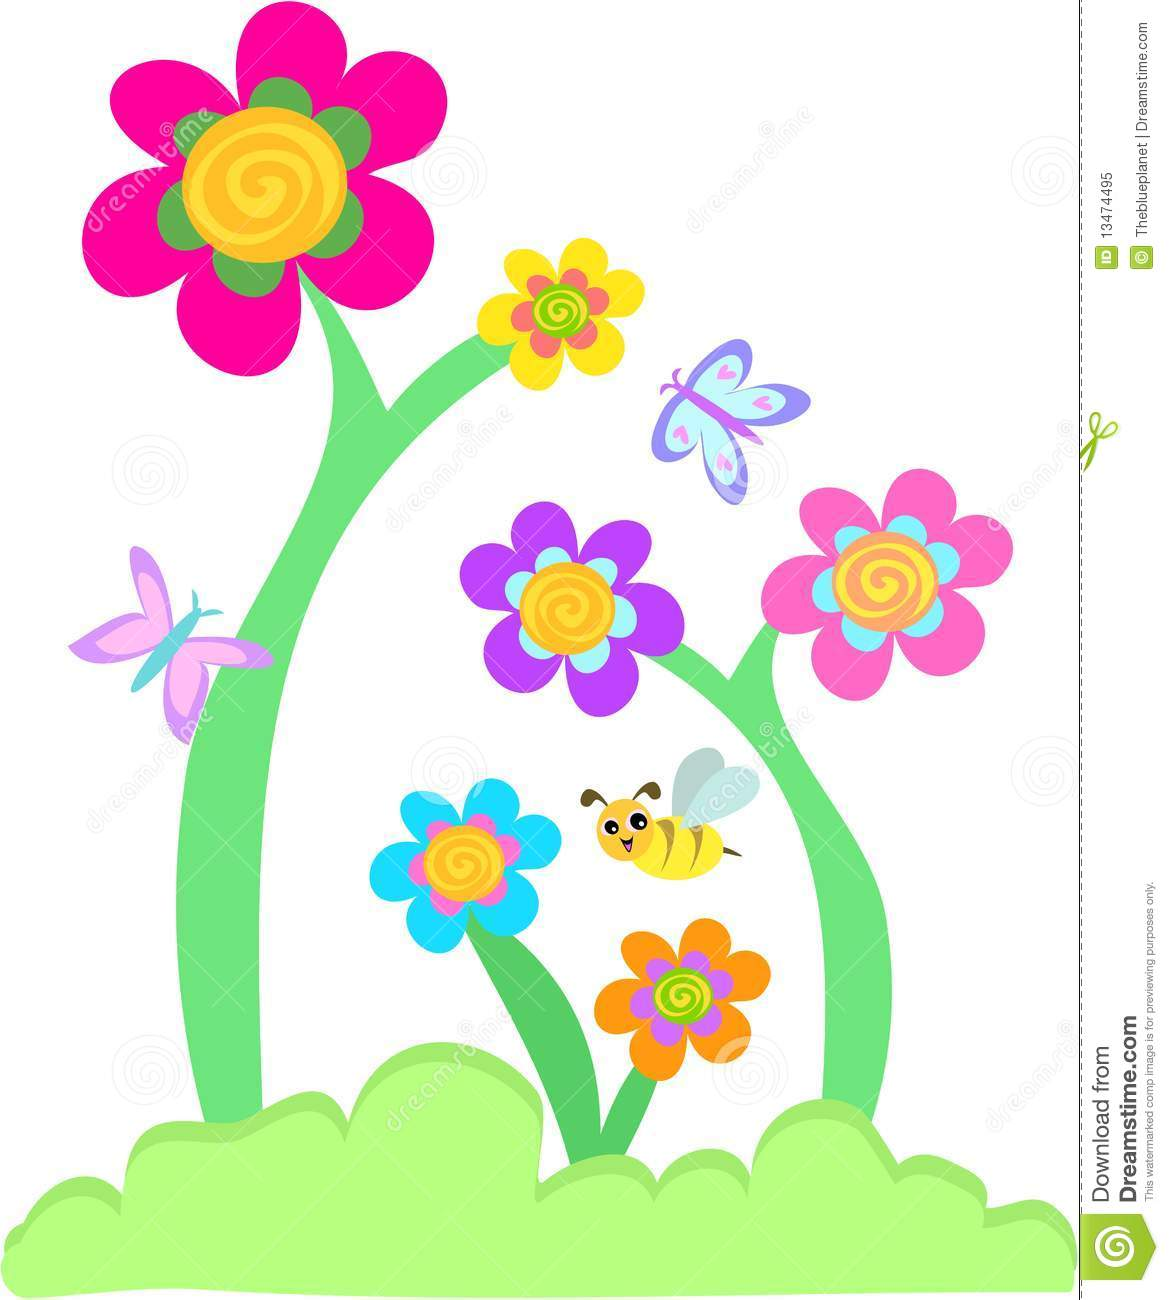 Floral clipart whimsical Garden and collection clipart the